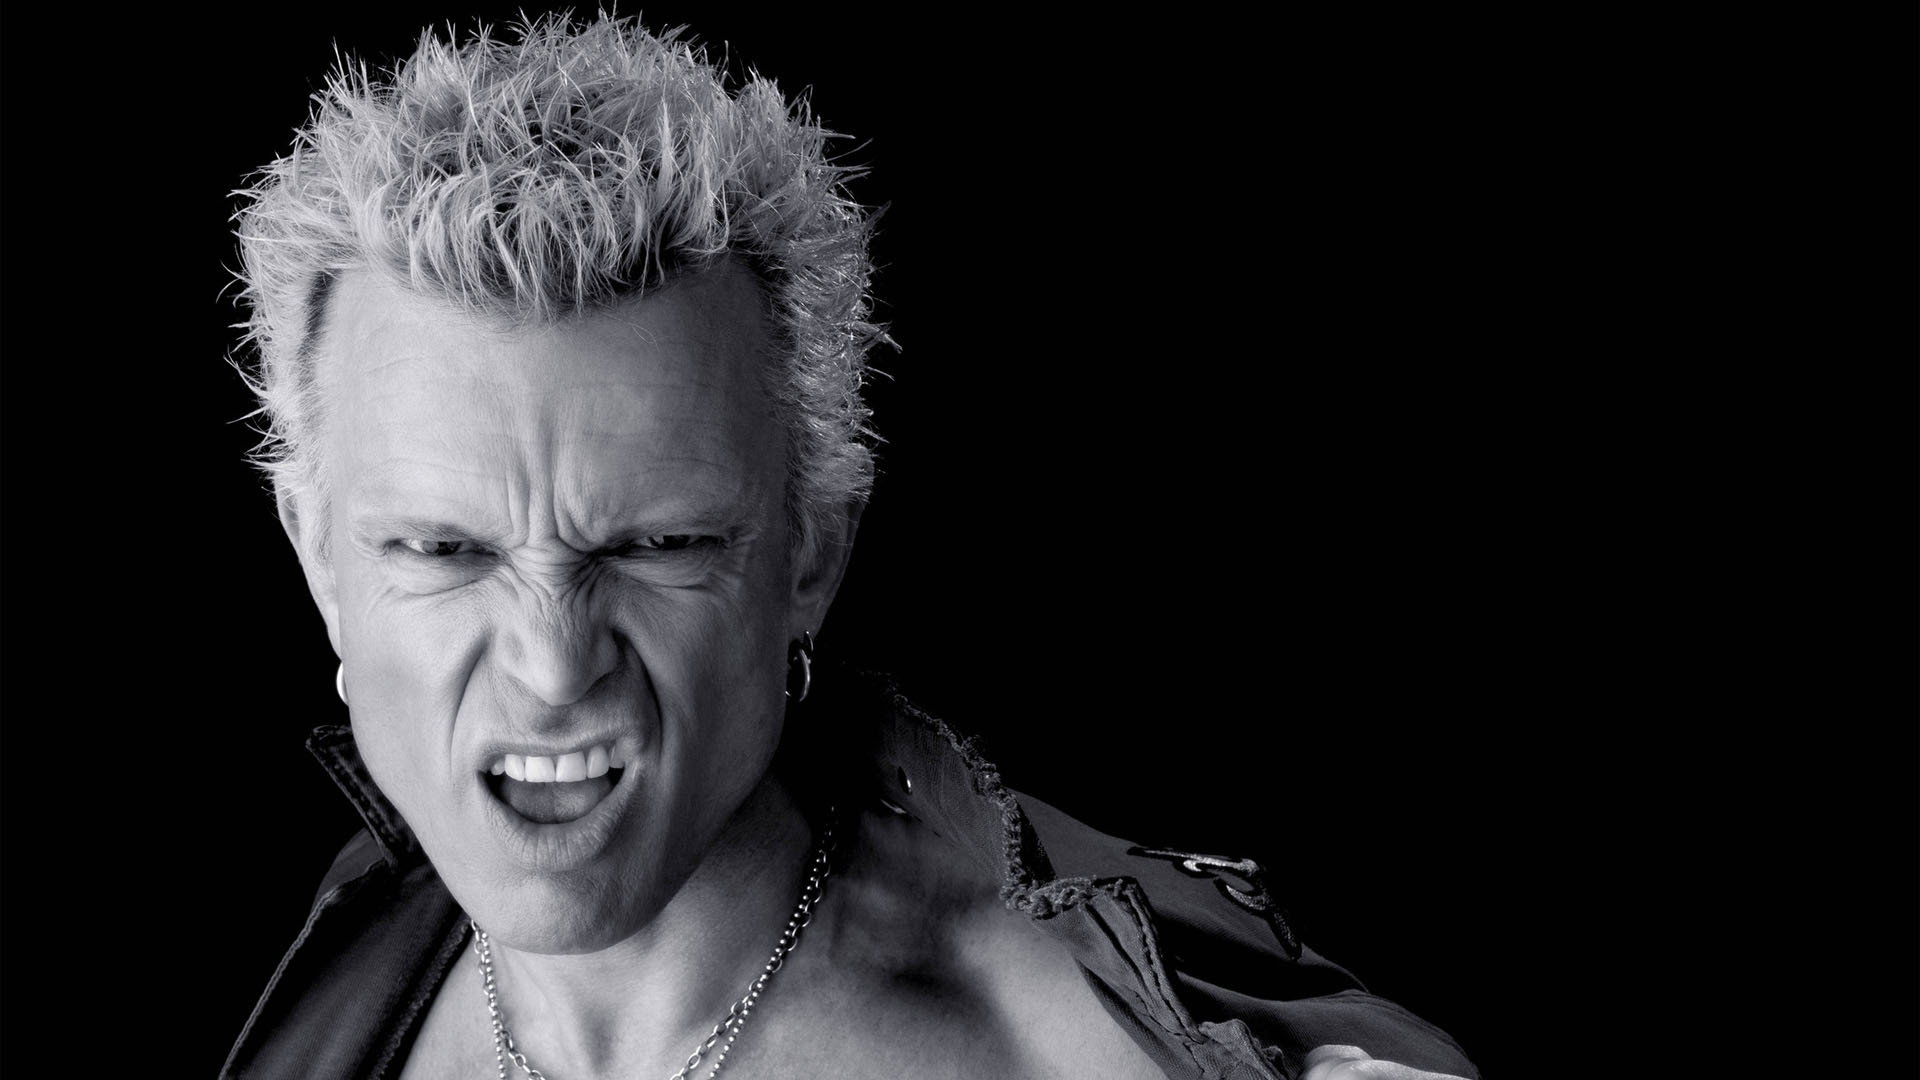 Billy Idol – Hot In The City